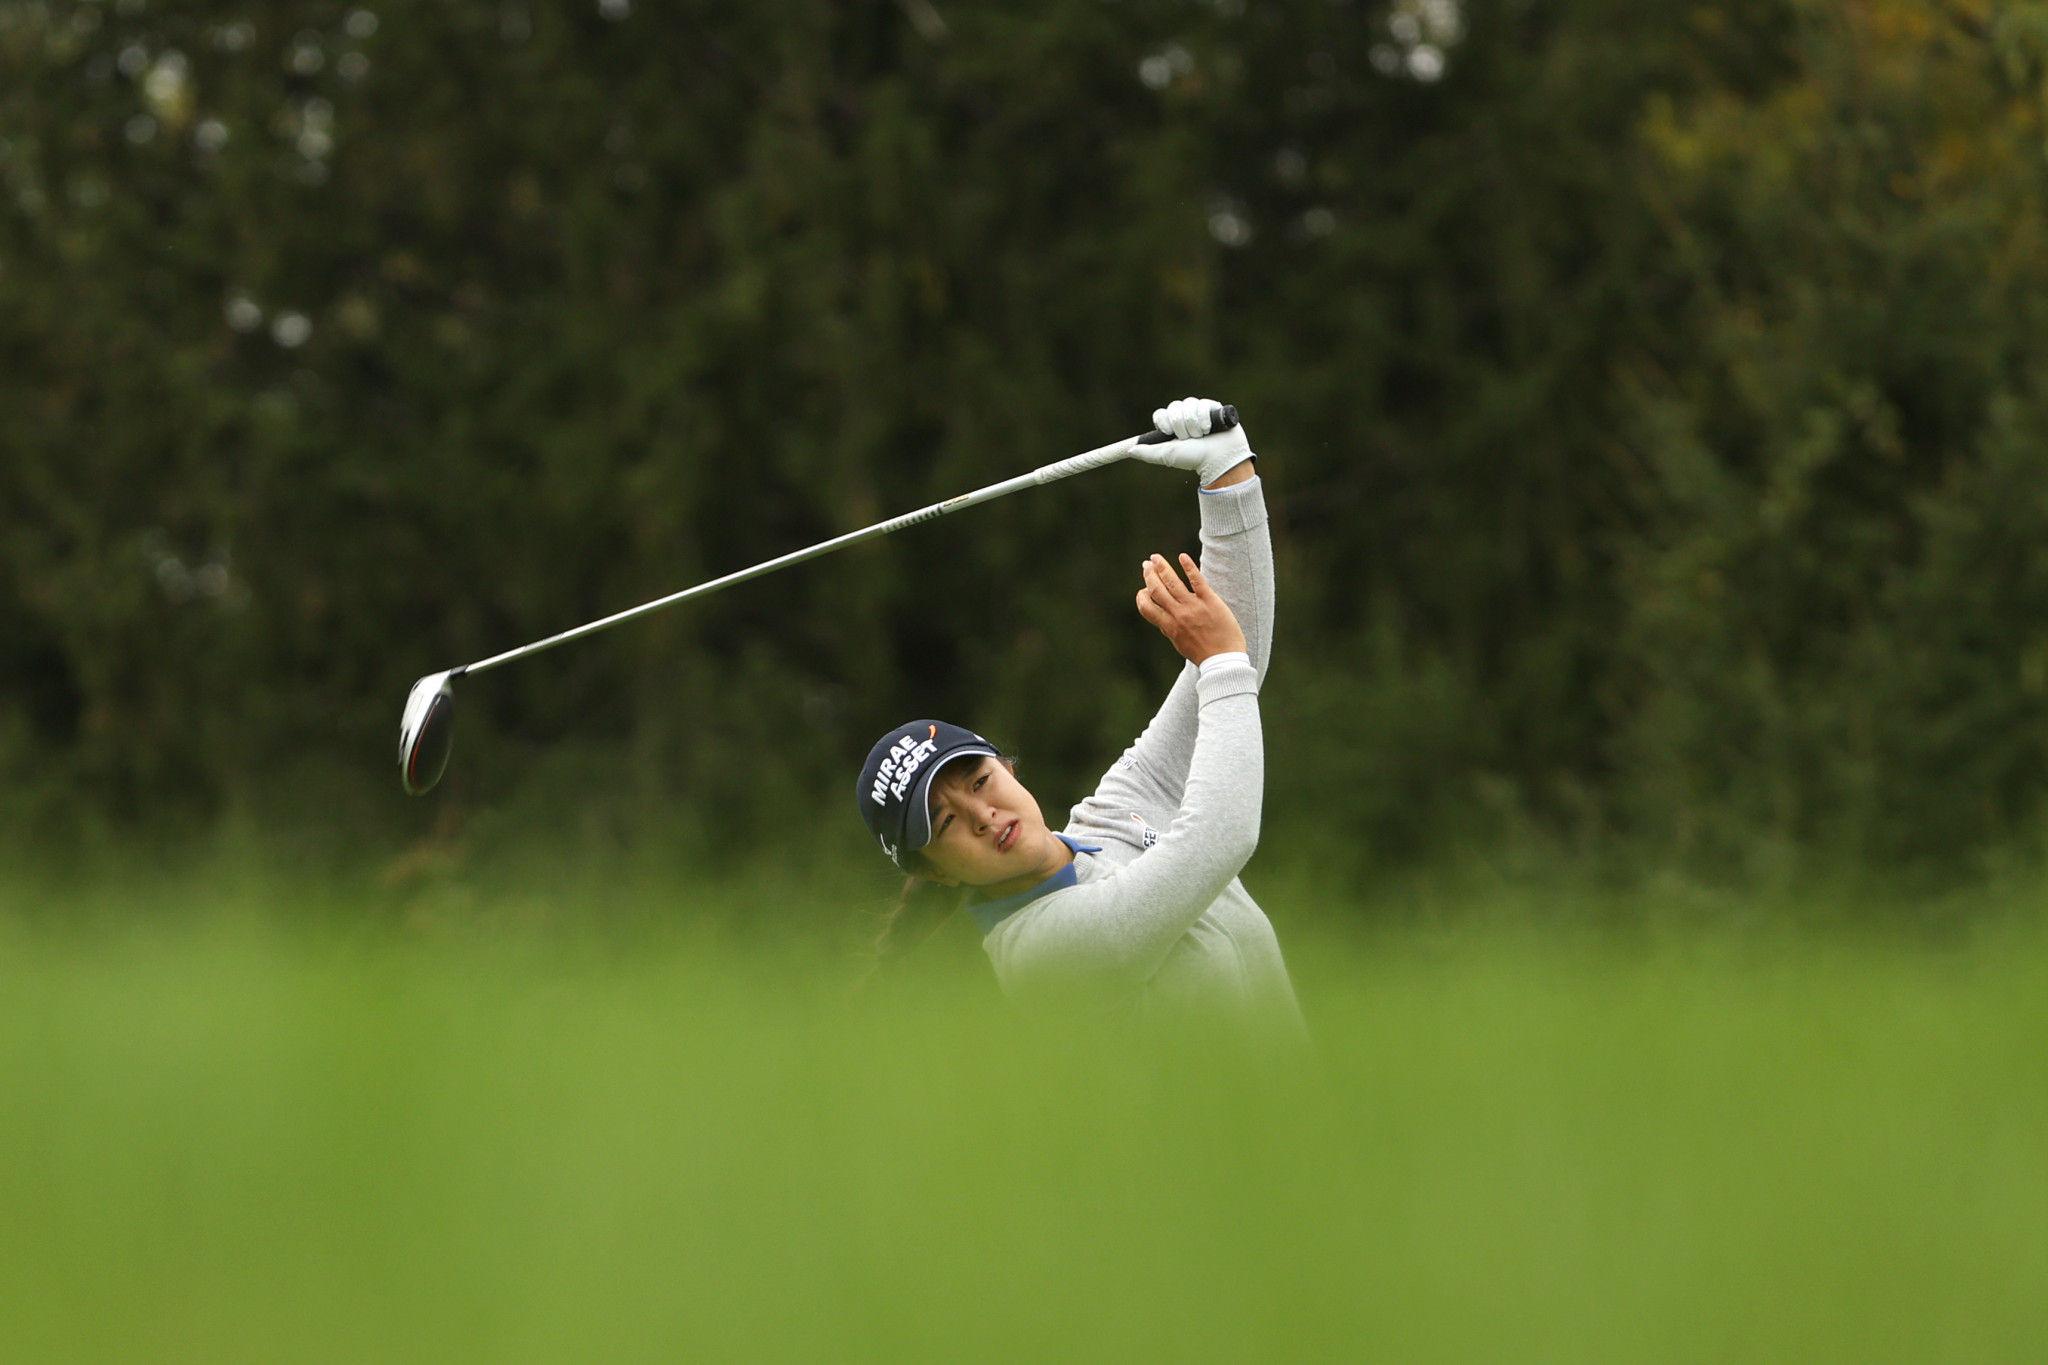 Lydia Ko finishes in top 20 at Women's PGA Championship